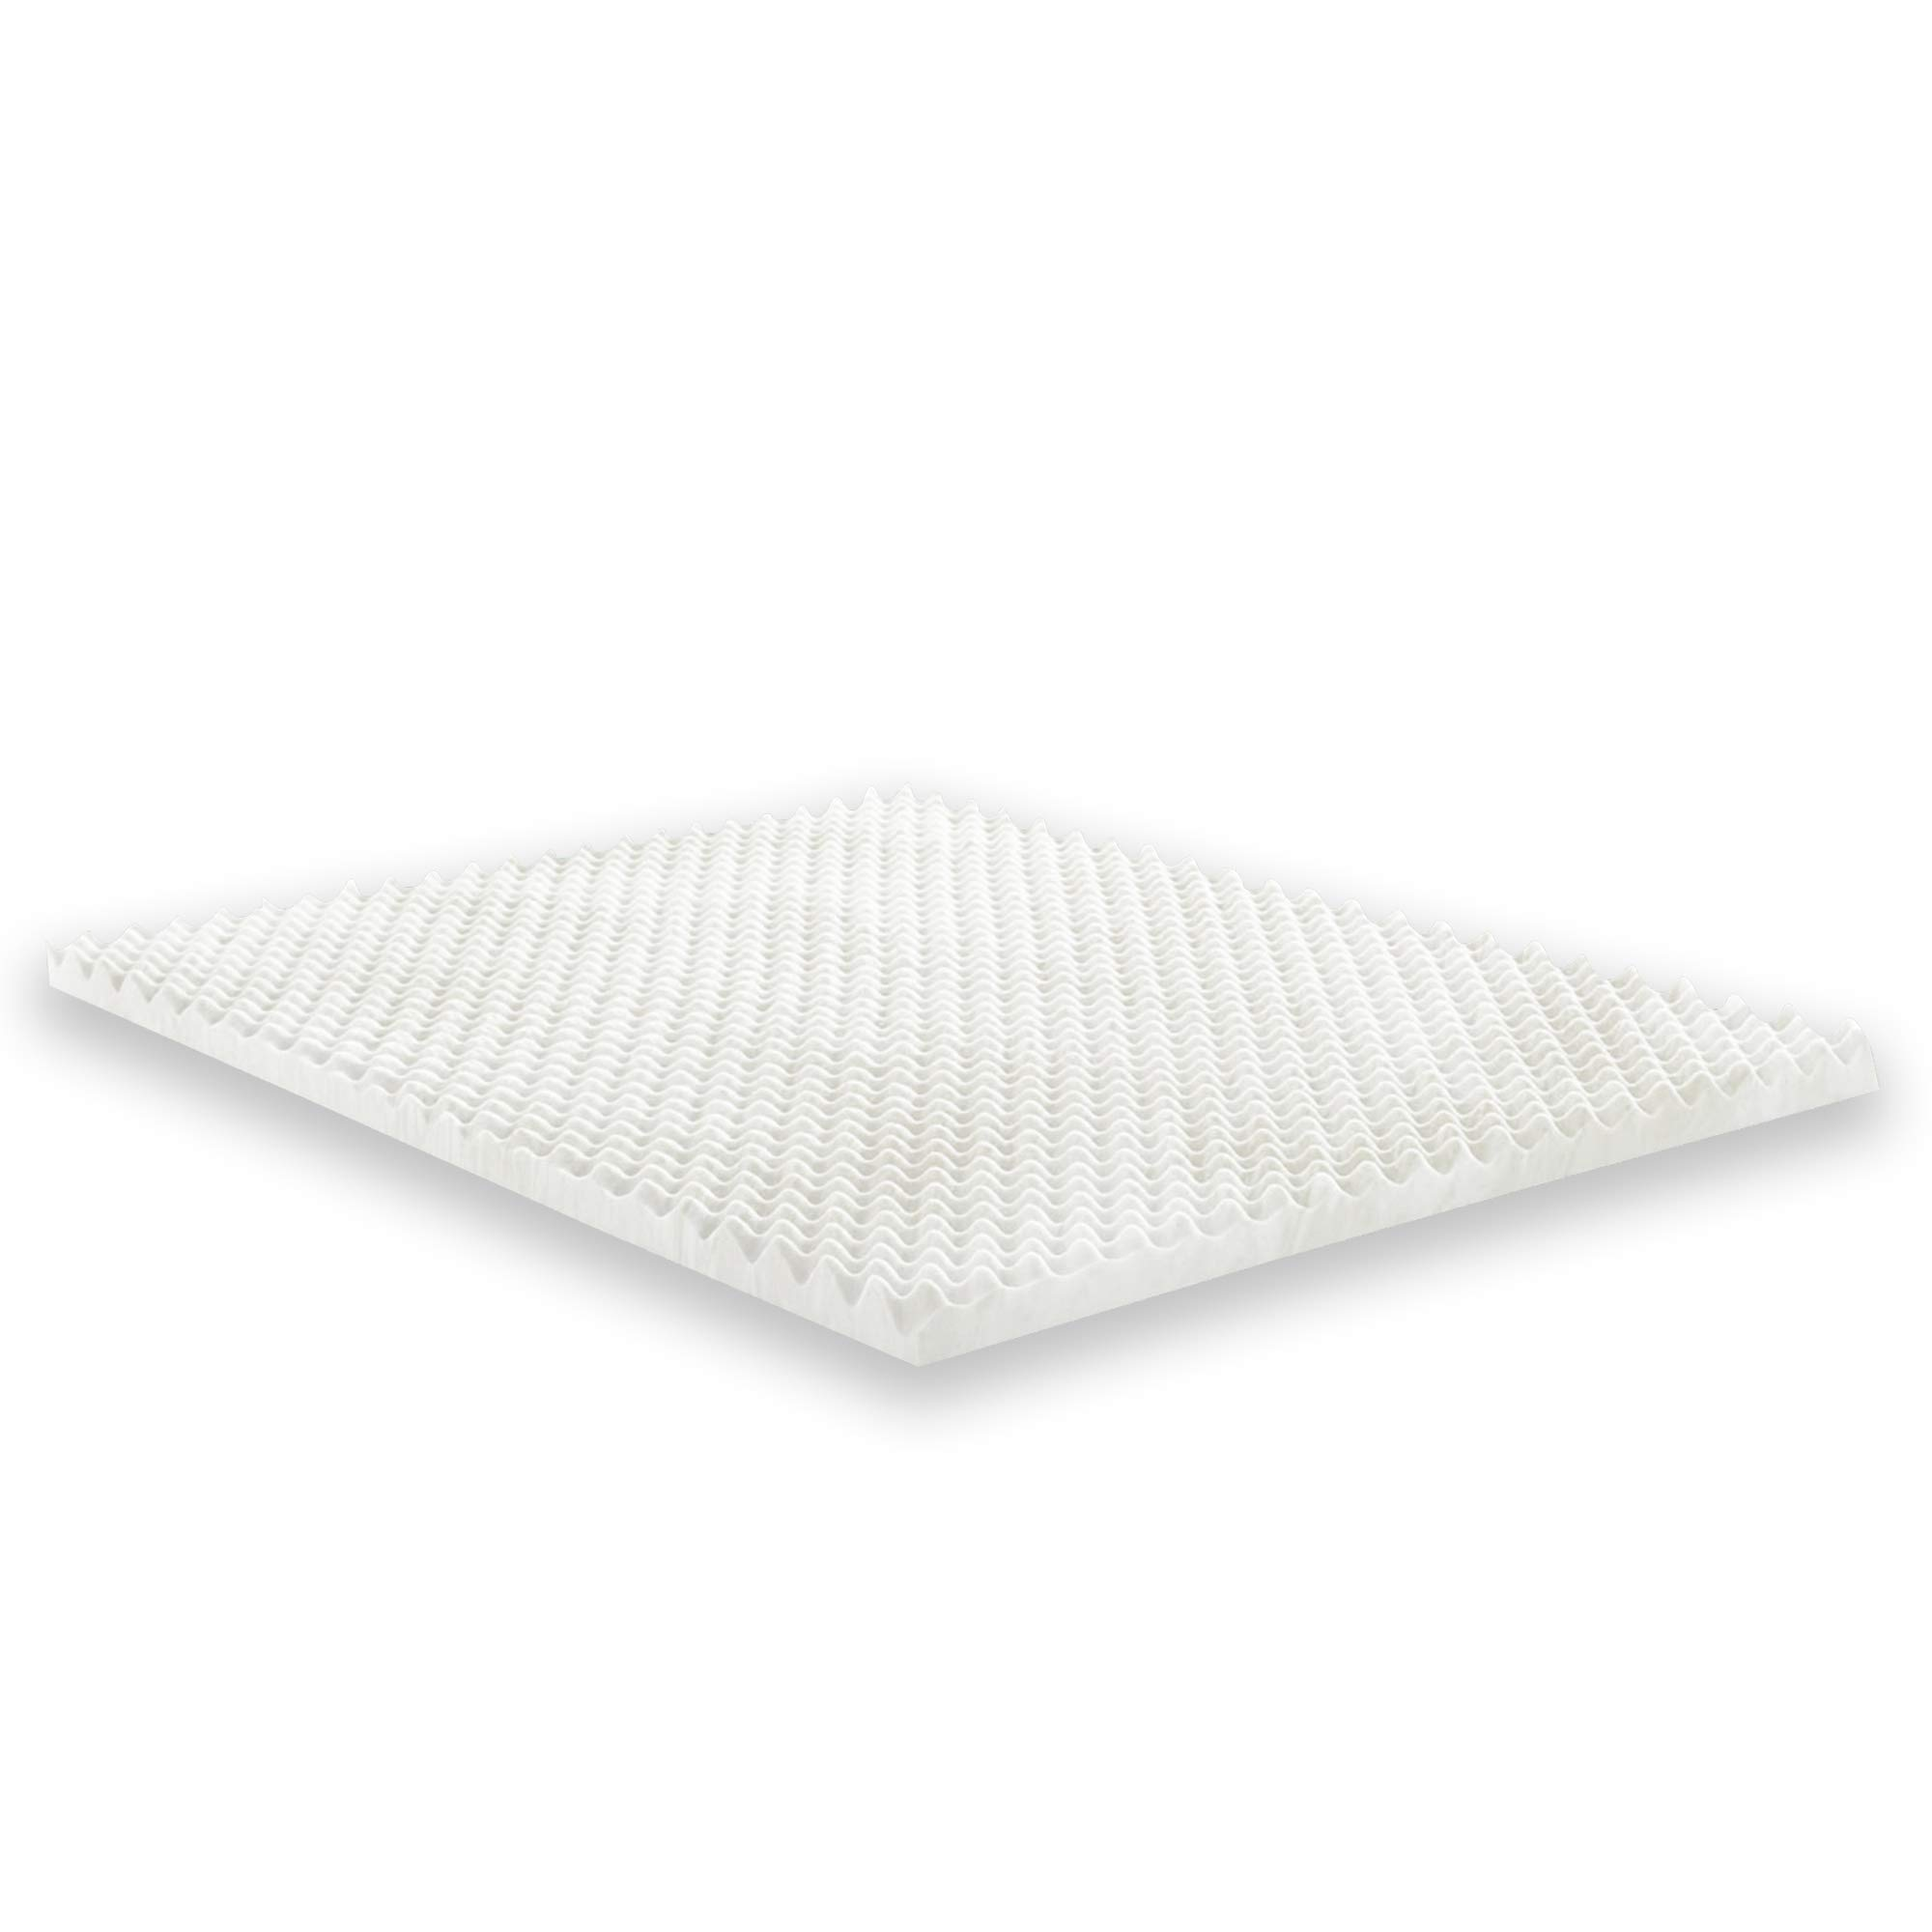 Mayton Mattress Topper 1 Inch Convoluted Egg Crate l Breathable Foam, Twin, 38x74